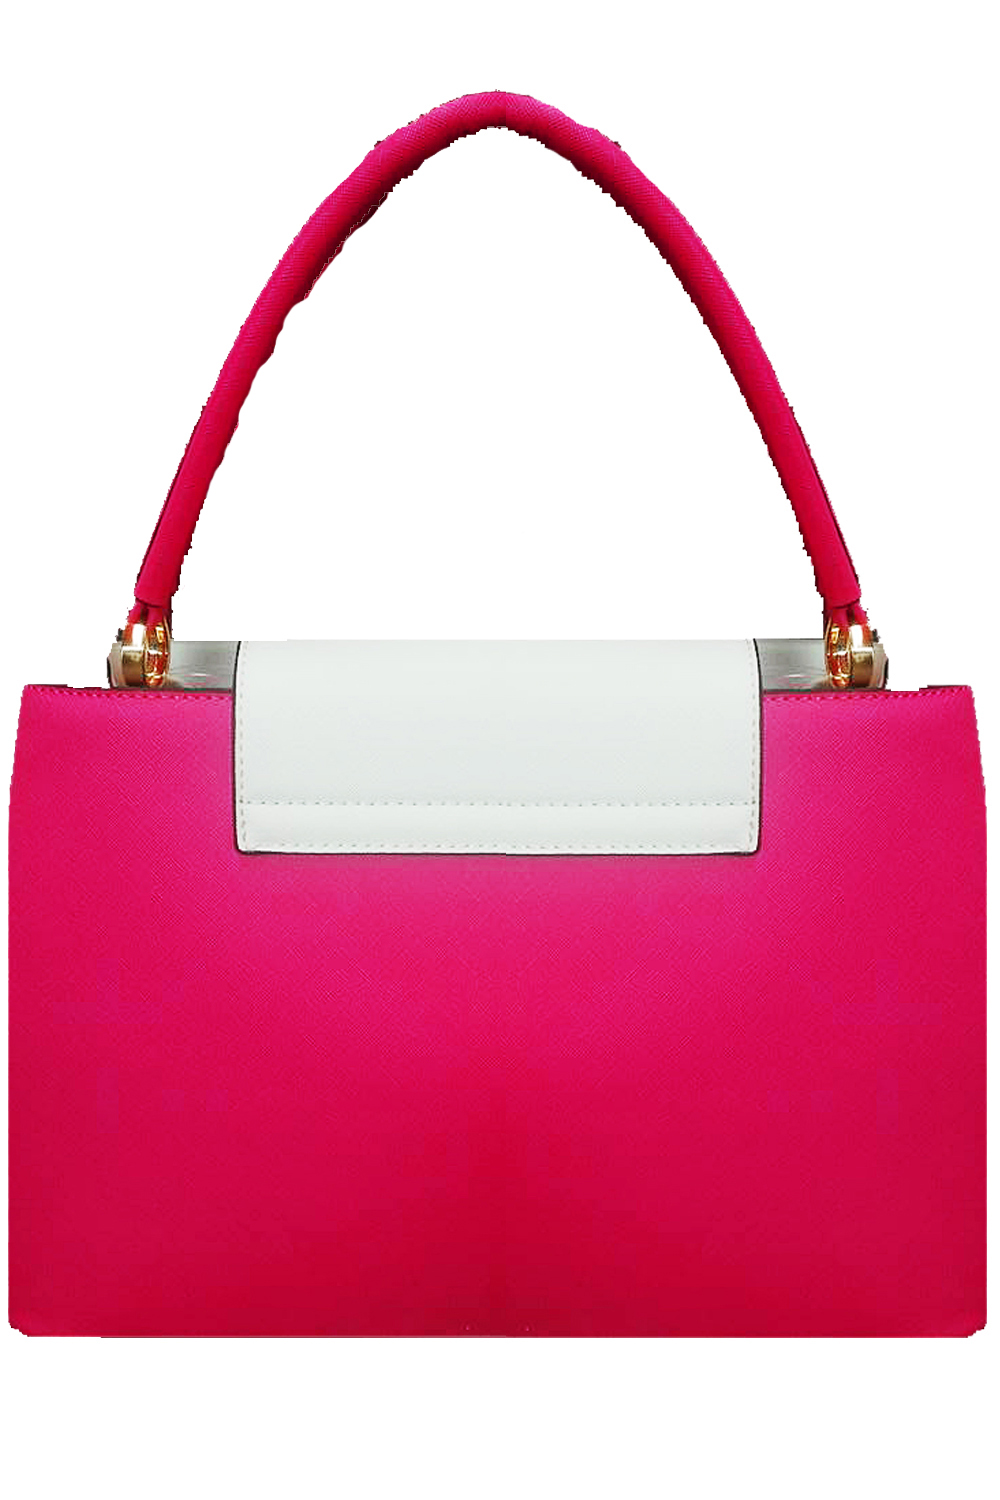 Panache Boutique Dover Celine Rose Handbag